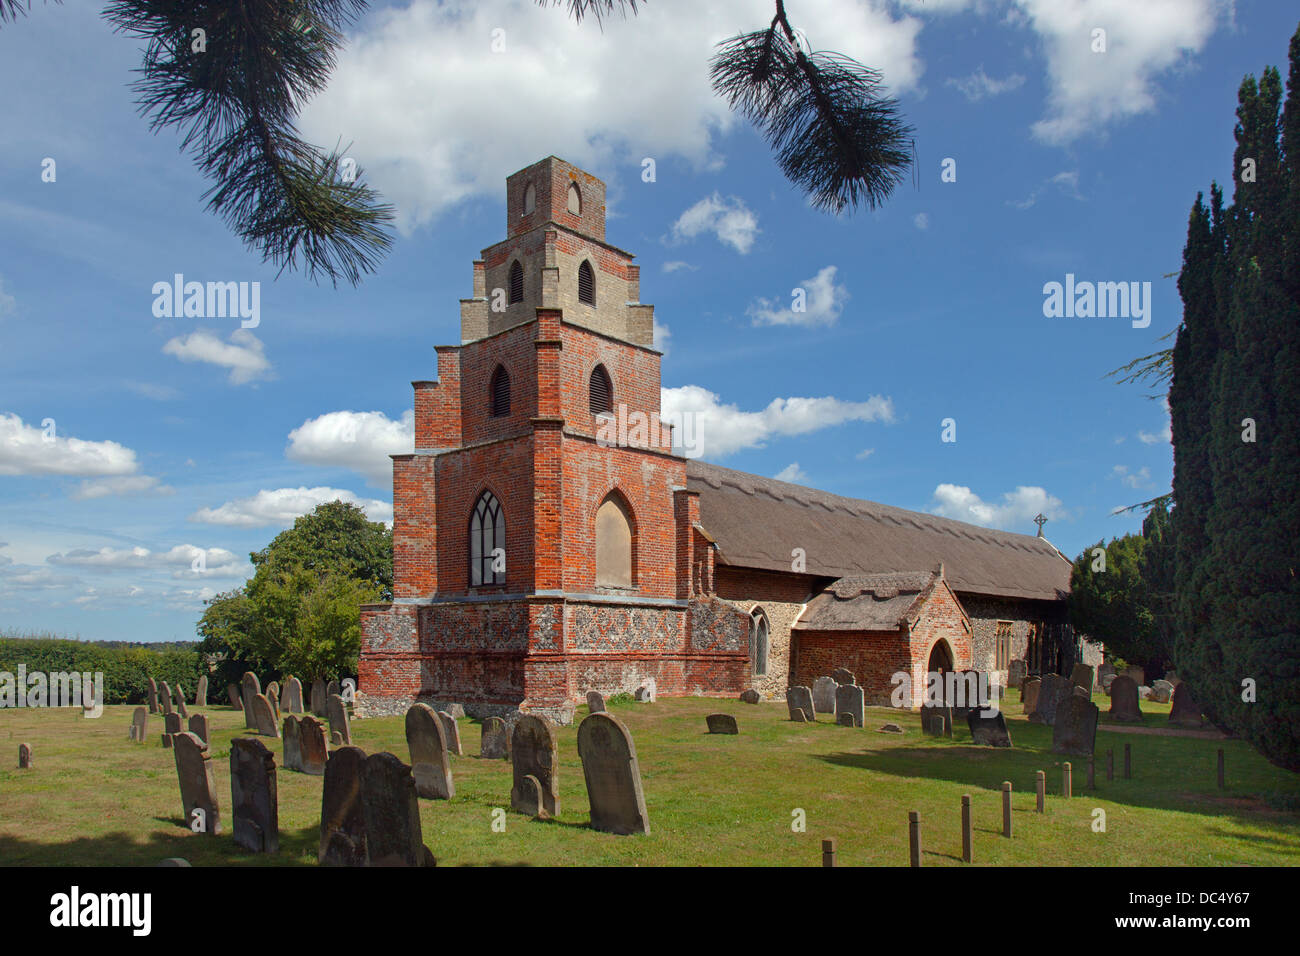 St Mary Church Burgh St Peter Suffolk England UK - Stock Image